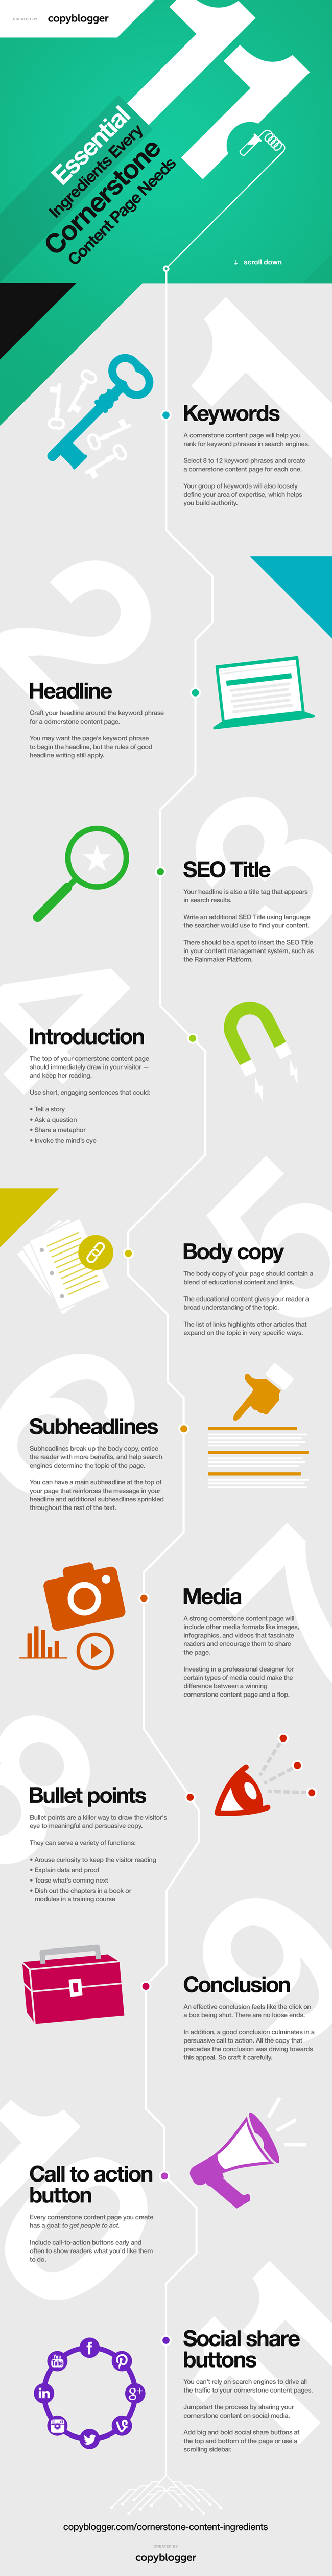 Copyblogger-11-Essential-Ingredients-Cornerstone-Content-Infographic